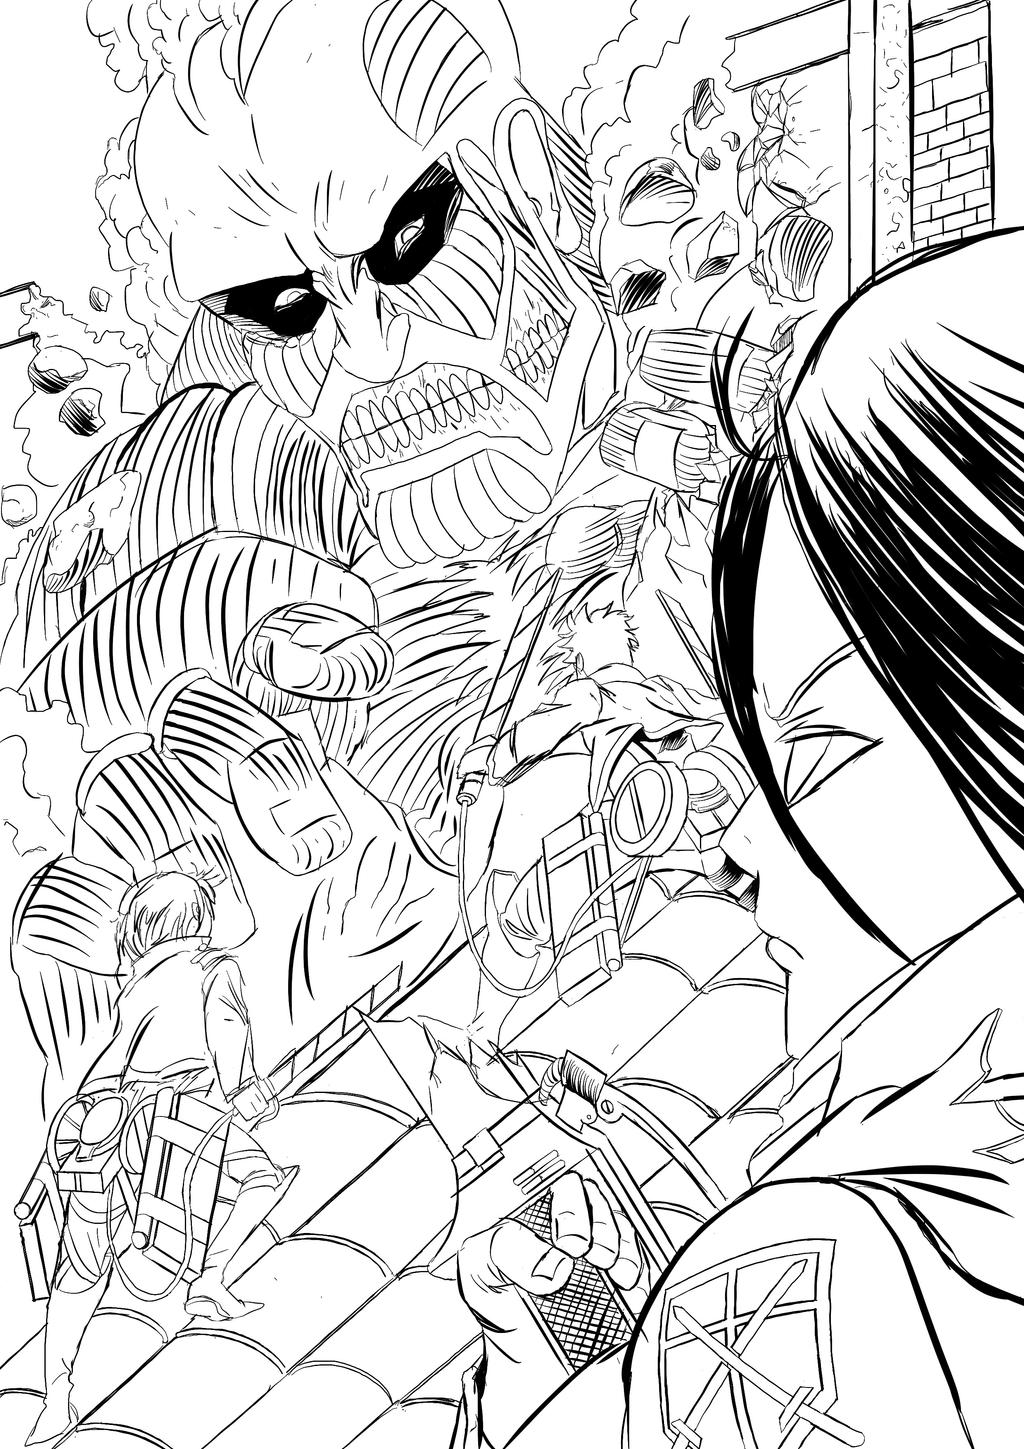 Attack on titan drawings for Attack on titan coloring pages